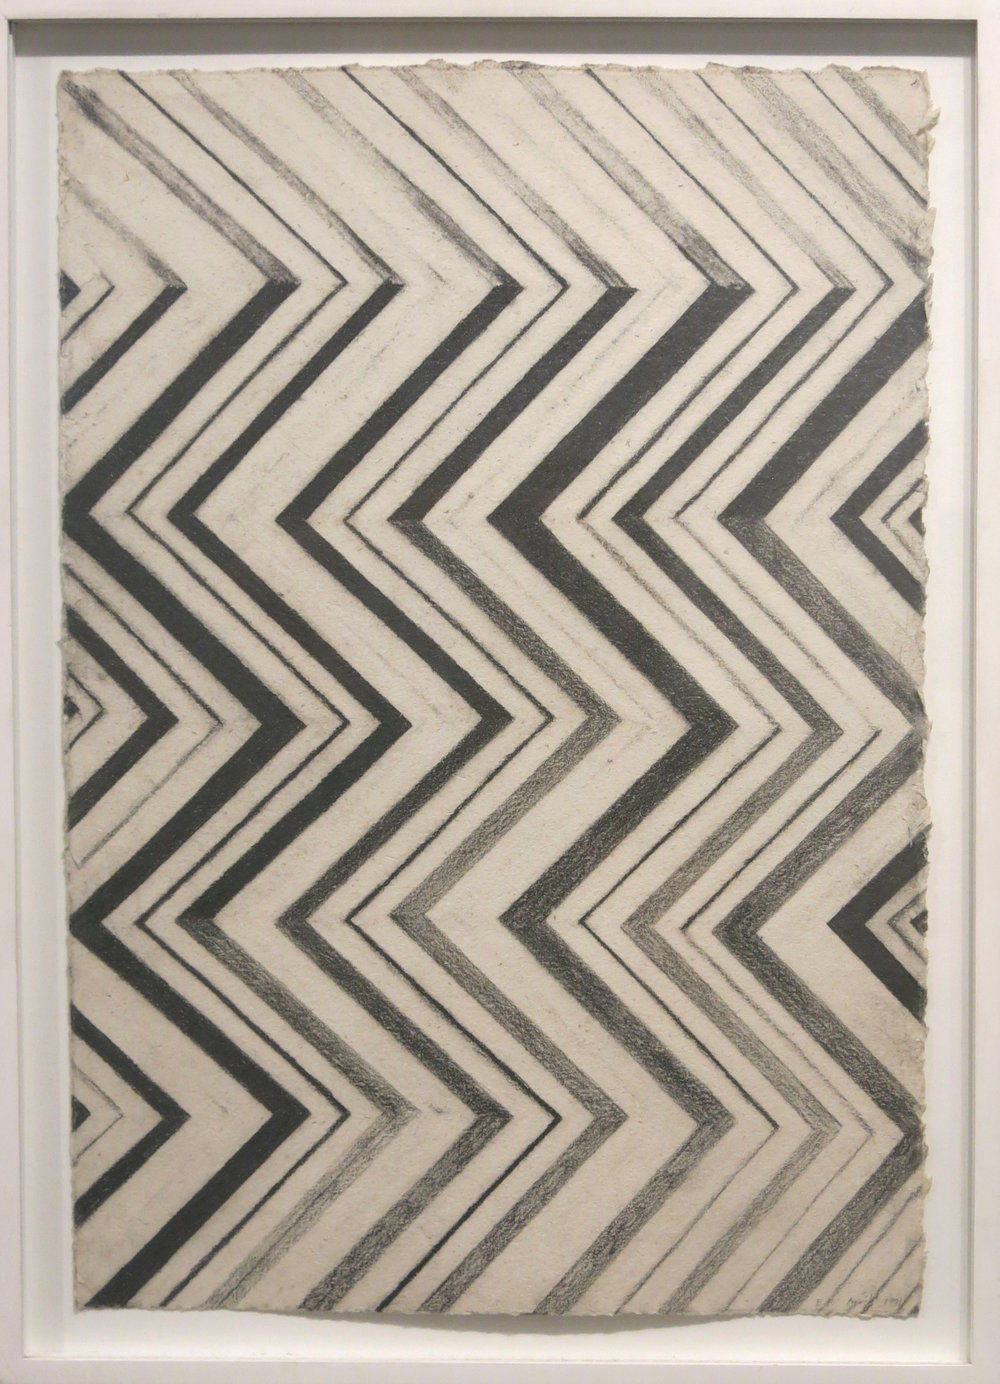 Edward Finnegan,  Untitled (Geometric Inlay),  1991, Graphite on paper, 24.25h x 18.25w in. (framed)